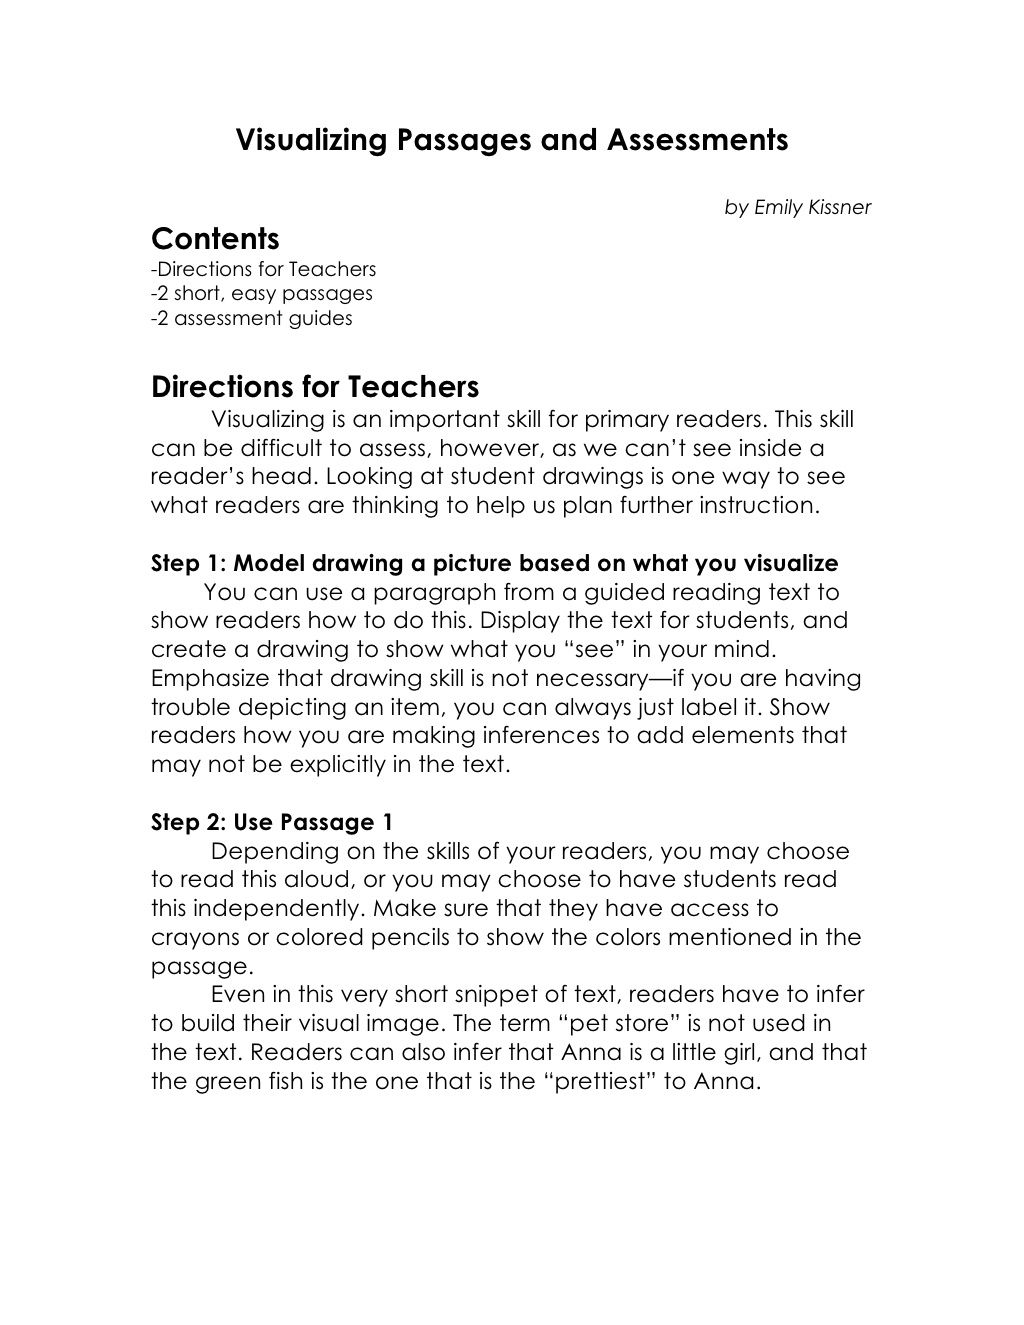 Visualizing Passages And Assessments Via Slideshare Reading Strategies Basic Sight Words Student Skills [ 1325 x 1024 Pixel ]